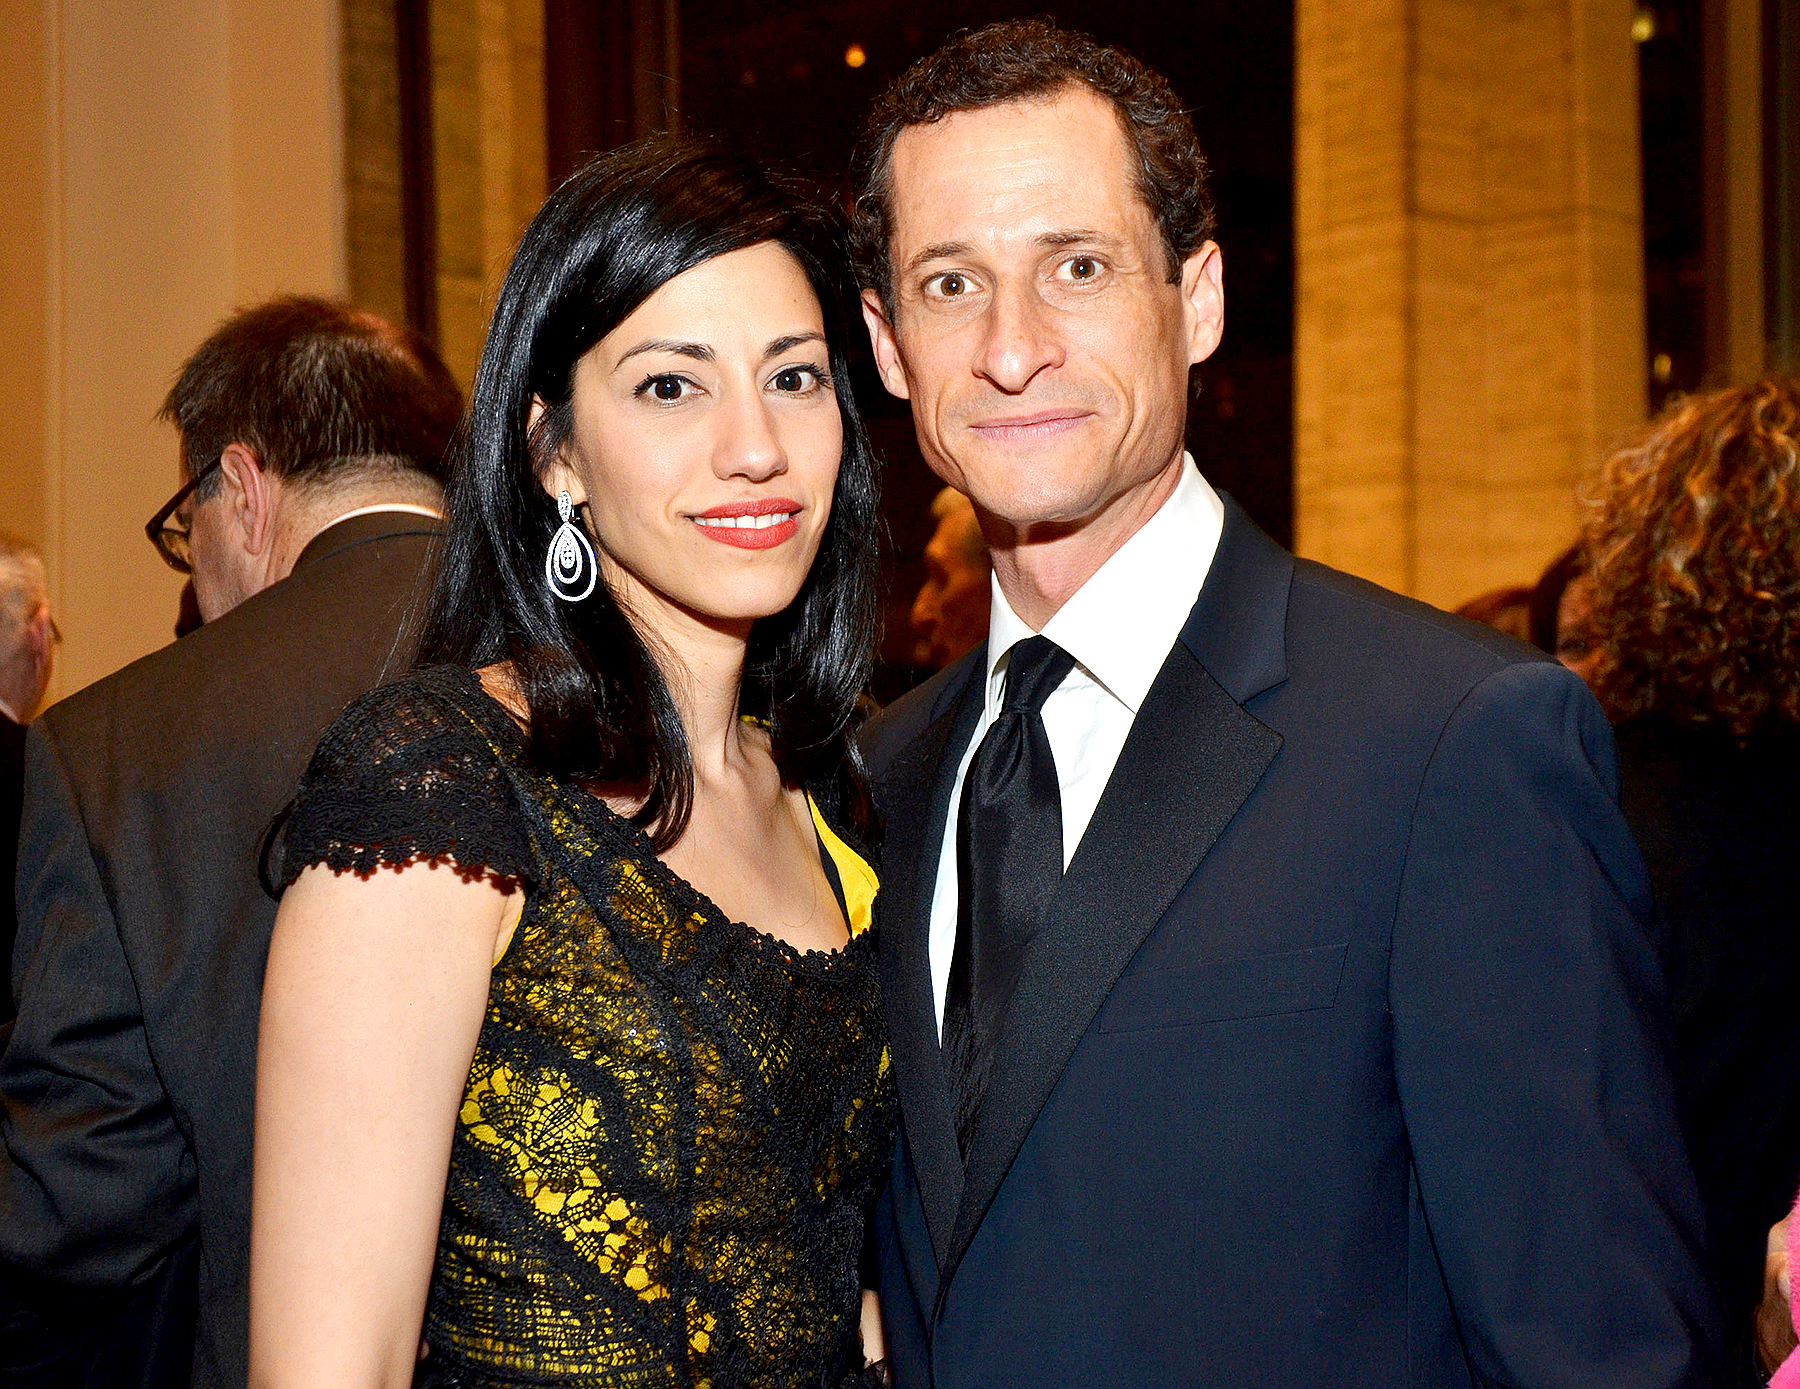 Huma Abedin and Anthony Weiner call off divorce